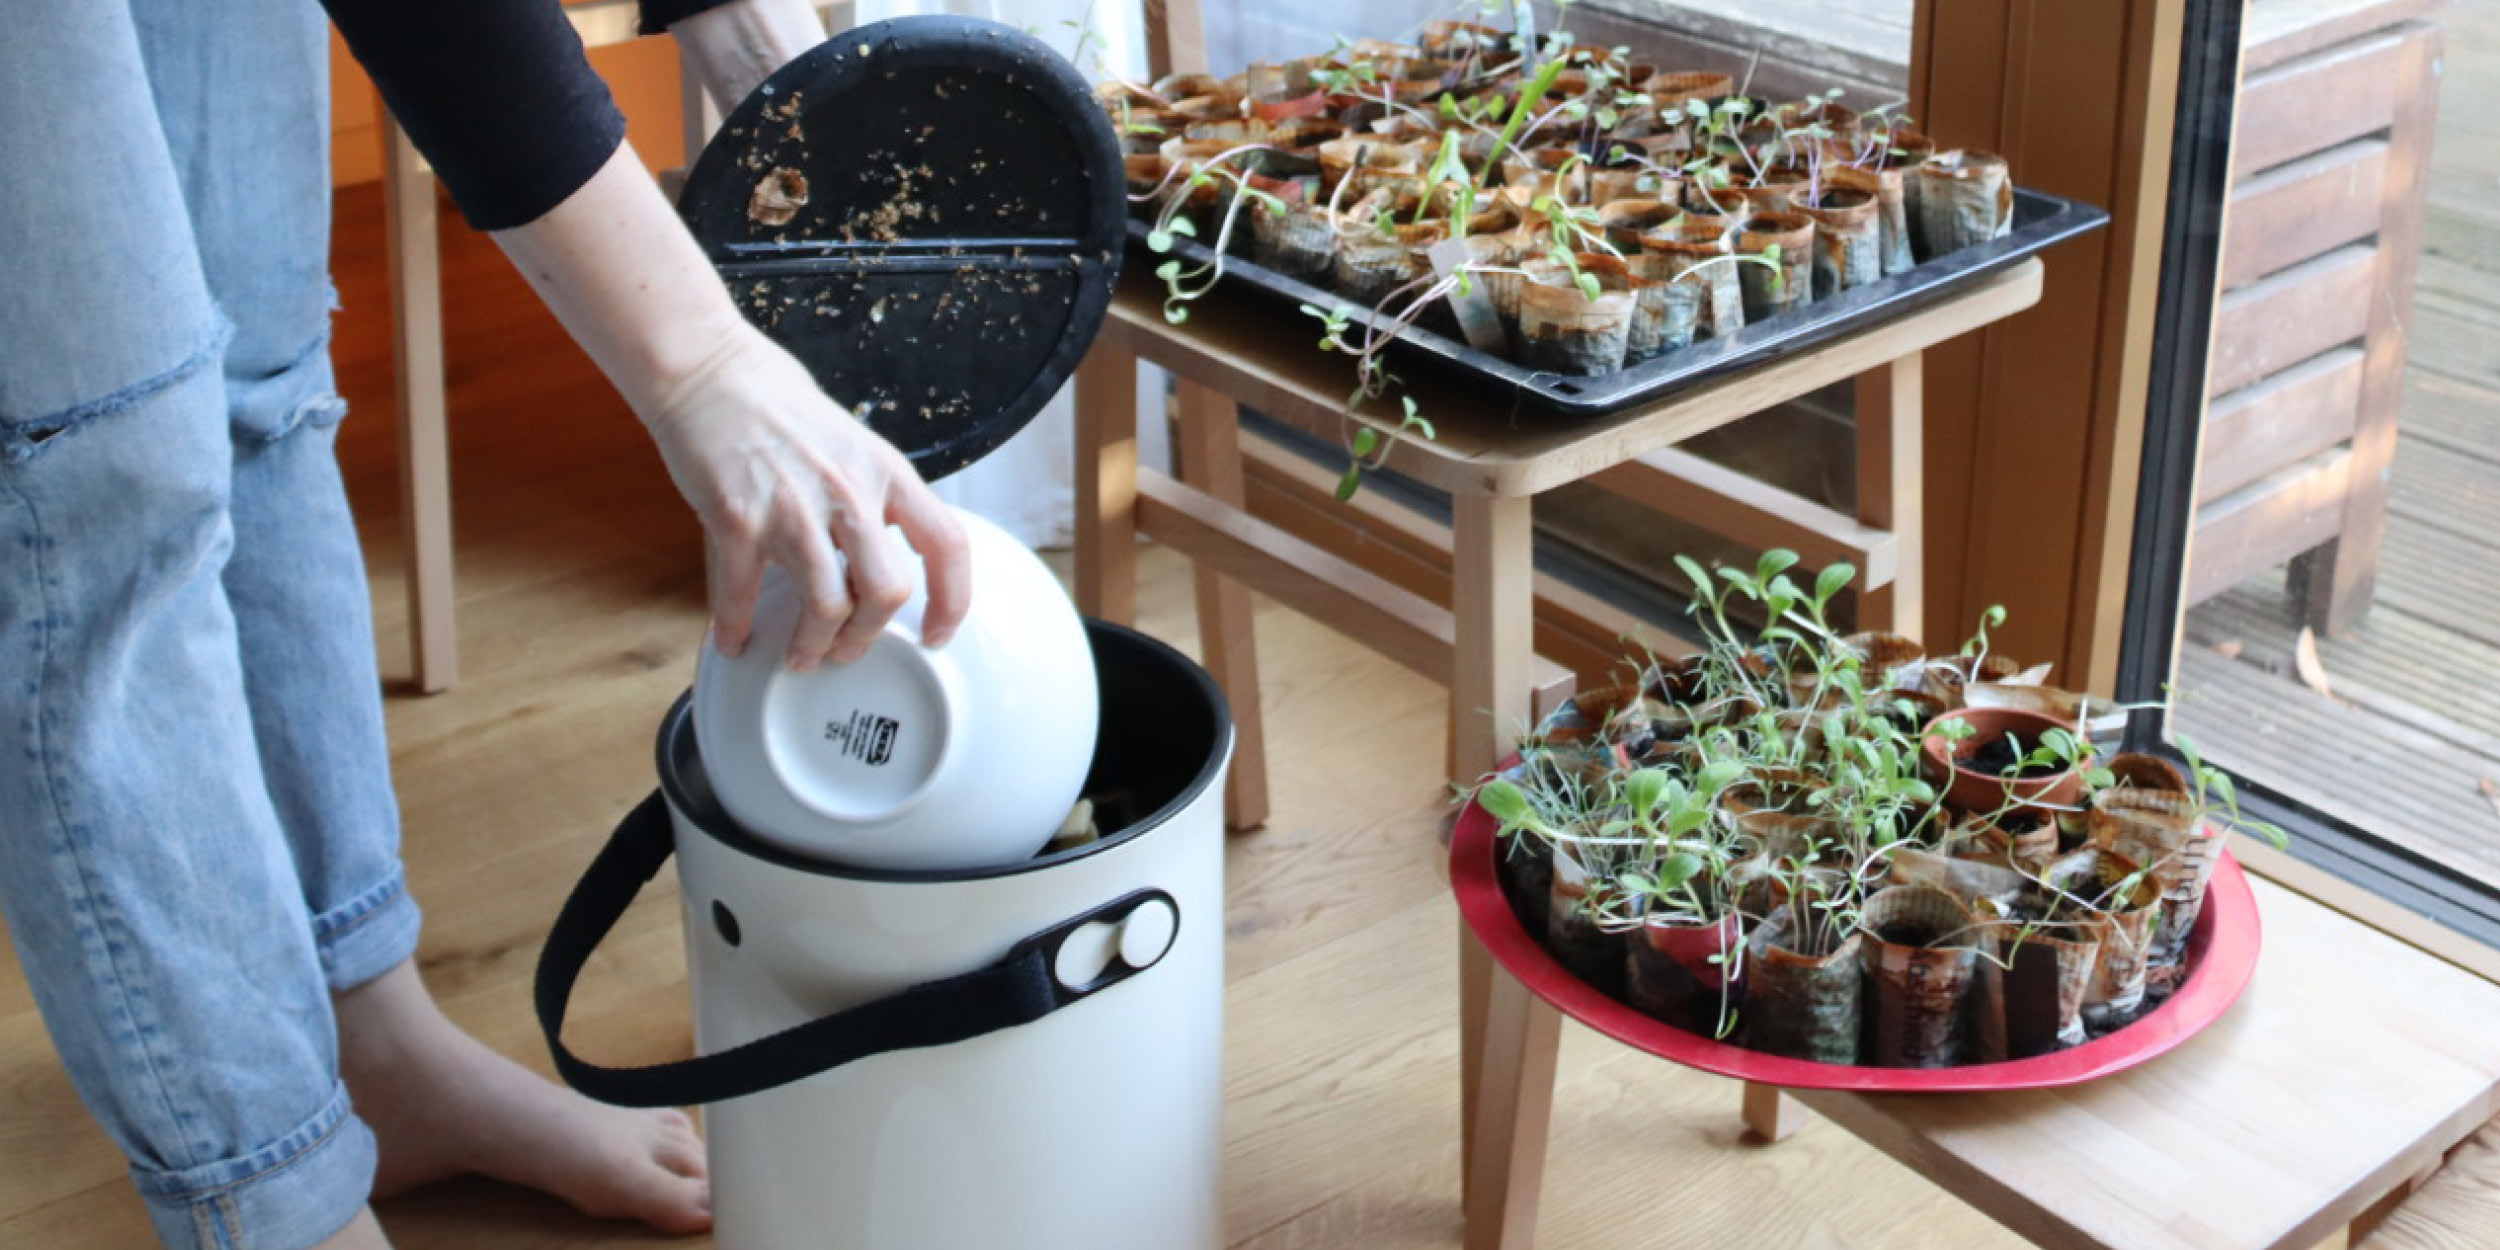 Manage food leftovers in an eco-friendly way